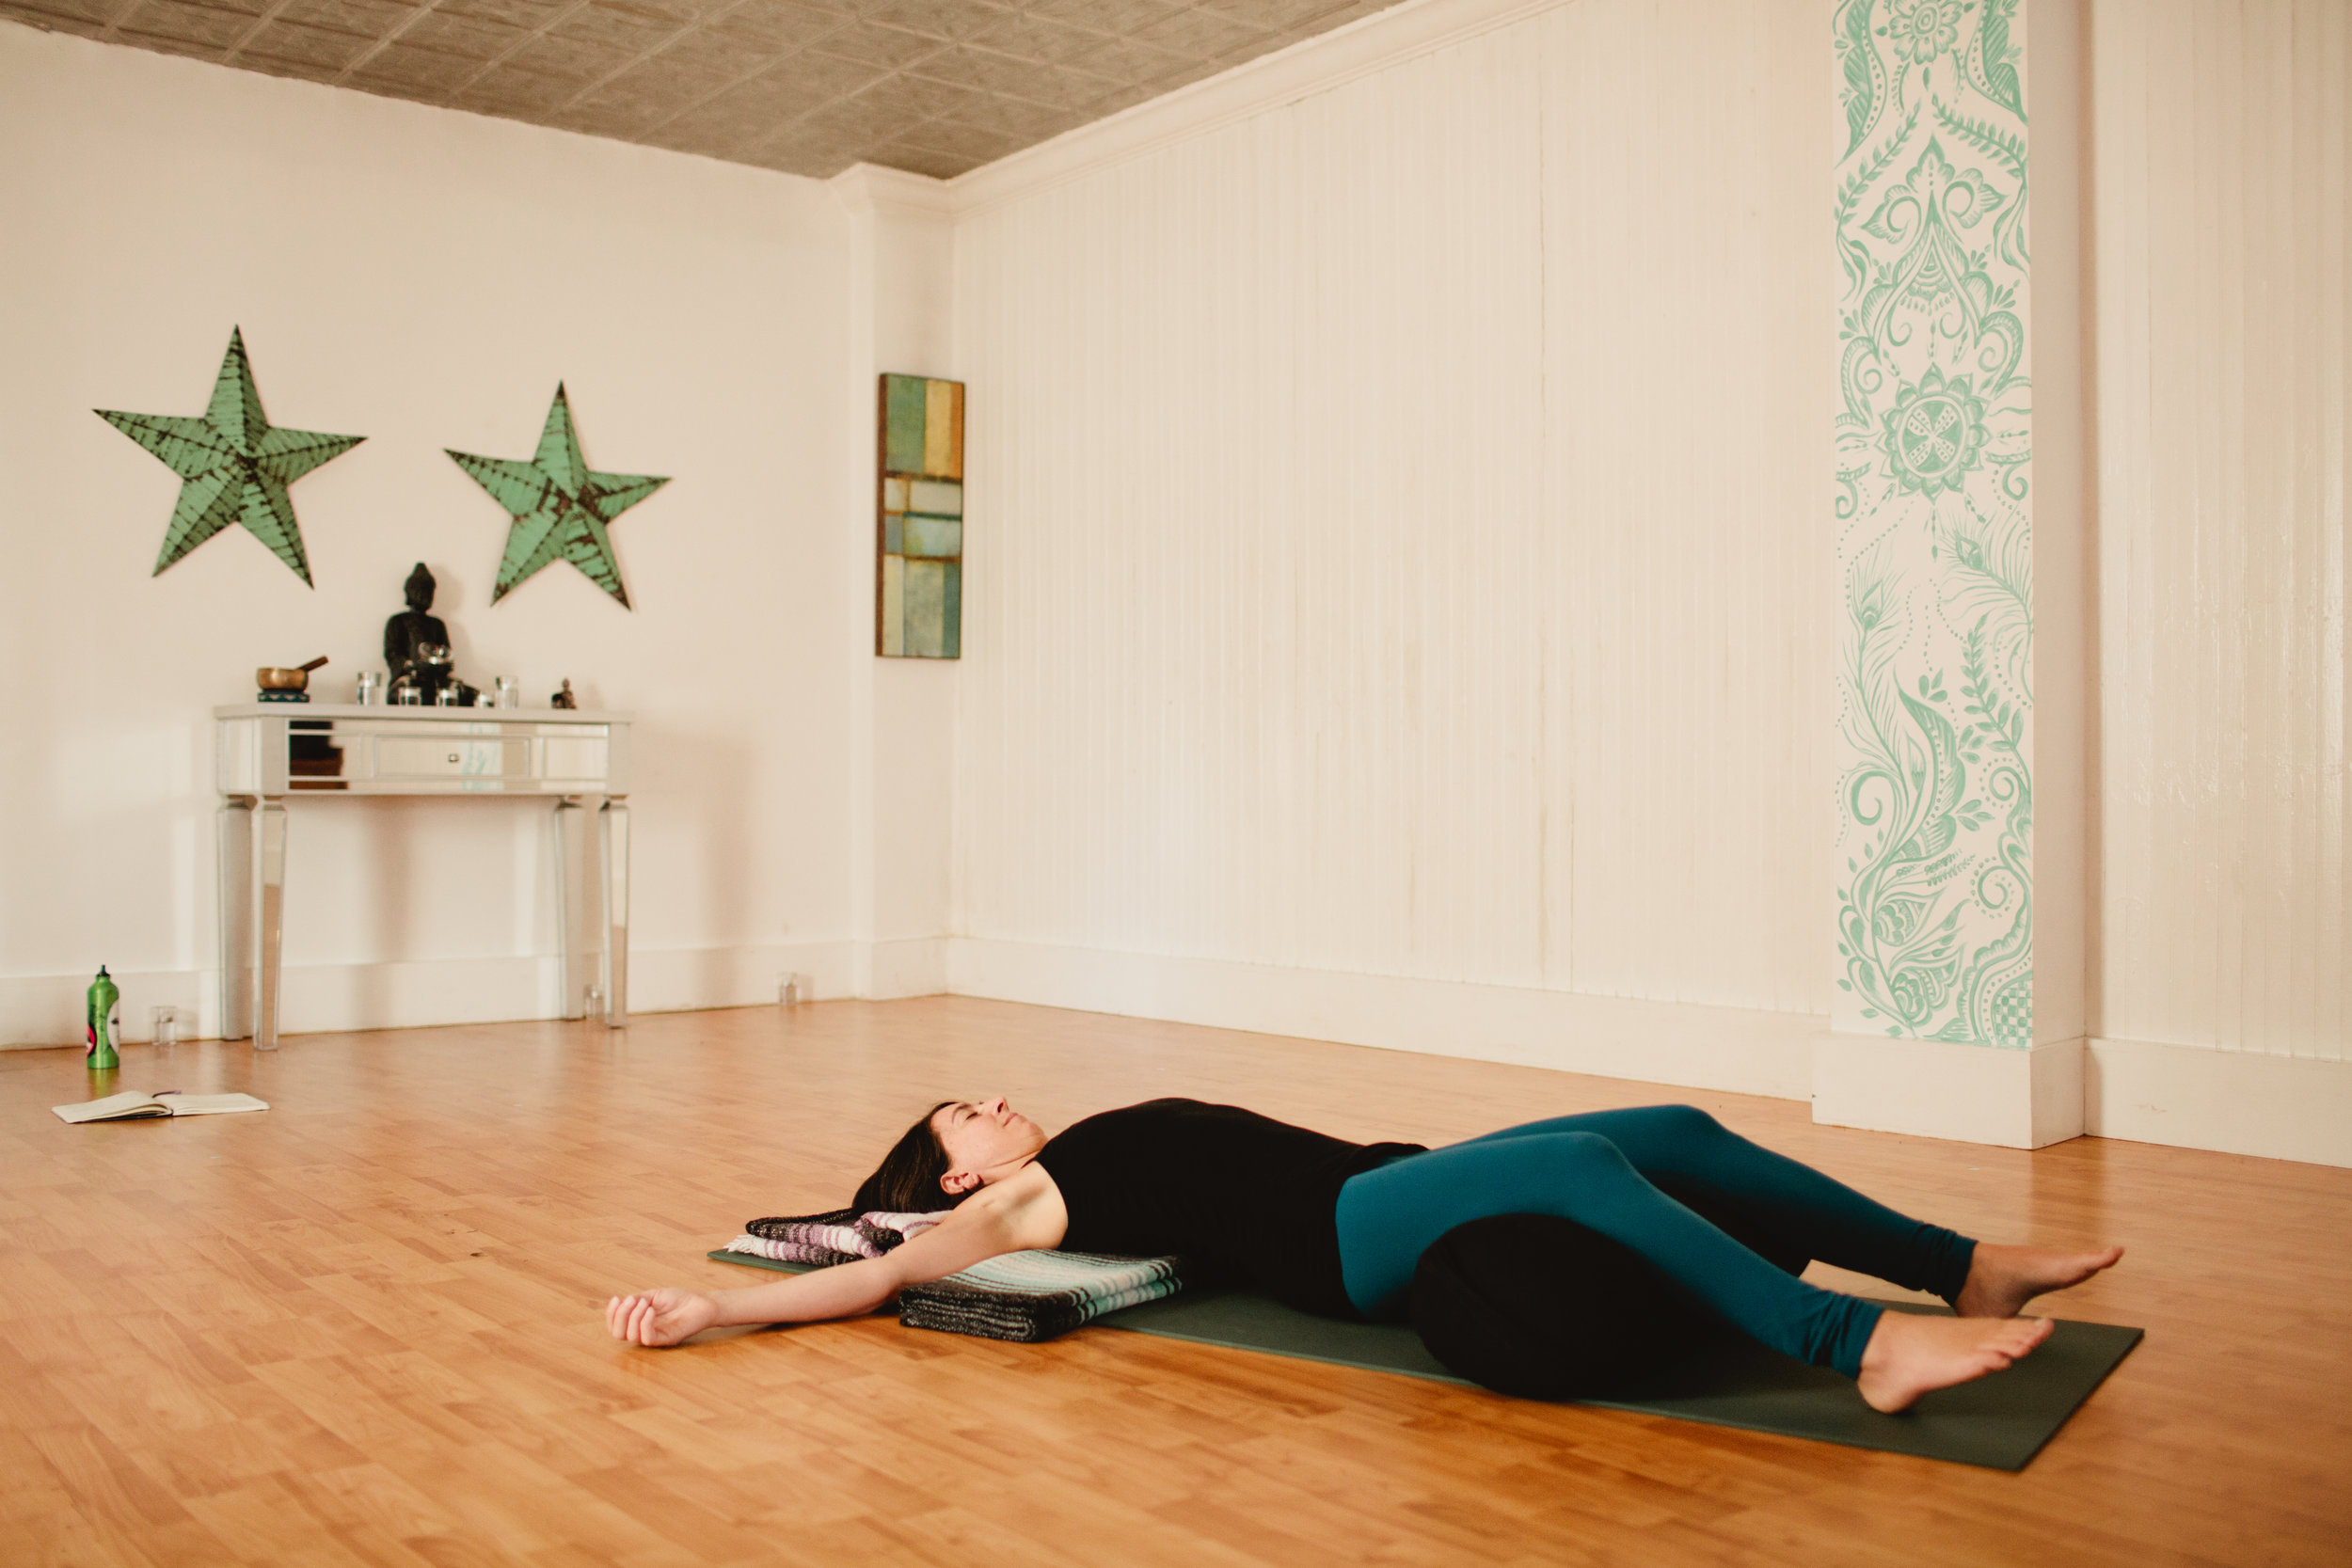 The Heart of the Matter: Supported Back Bends to Inspire + Uplift - March 31, 2018